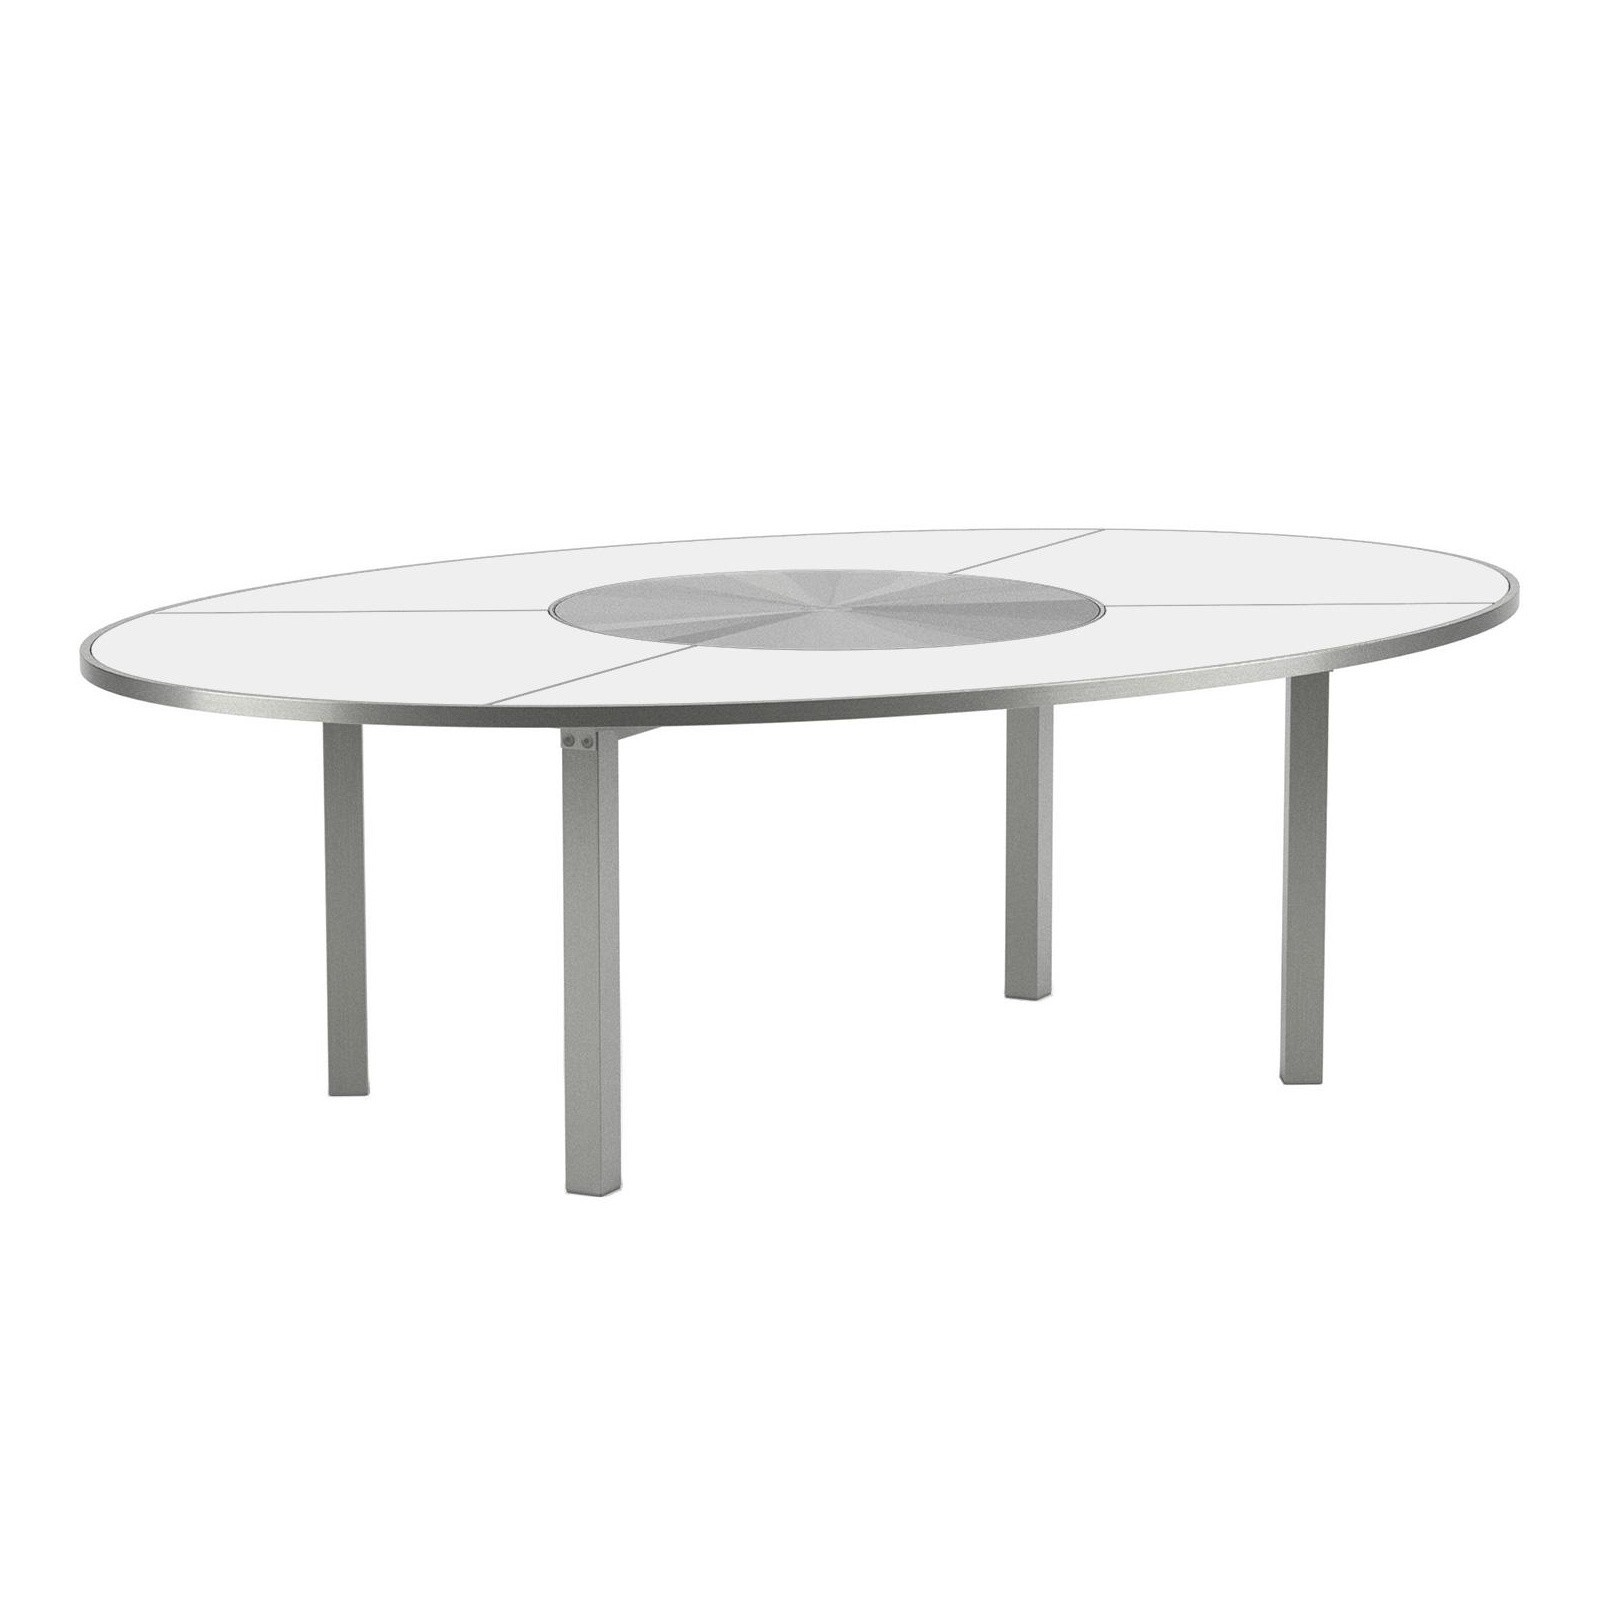 Royal Botania O-Zon - Table de jardin ovale Ø240 acier | AmbienteDirect